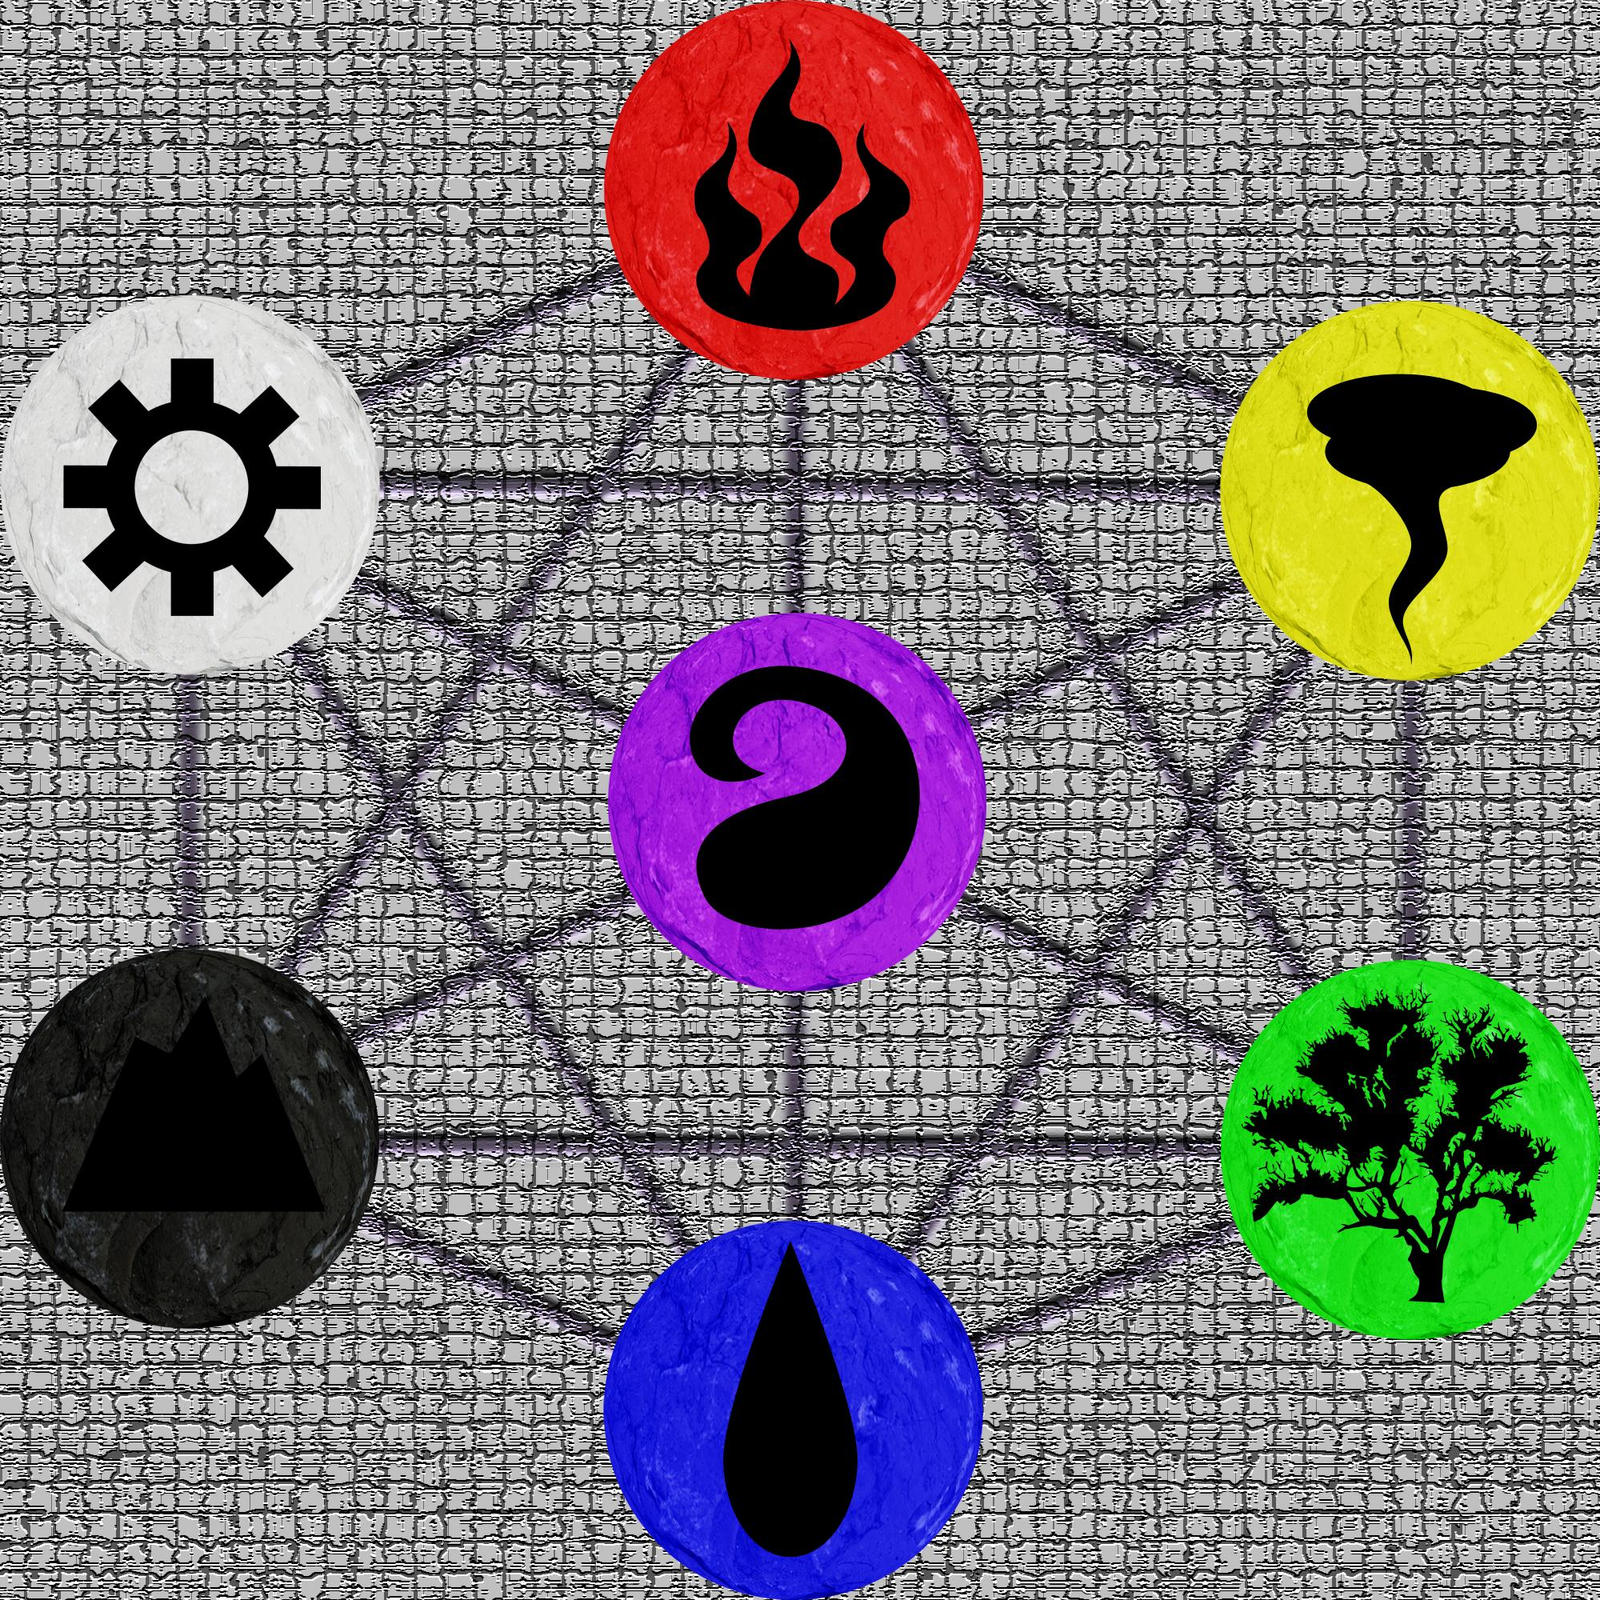 7 Elements Of Art Definitions : Elements by facepalmpunch on deviantart